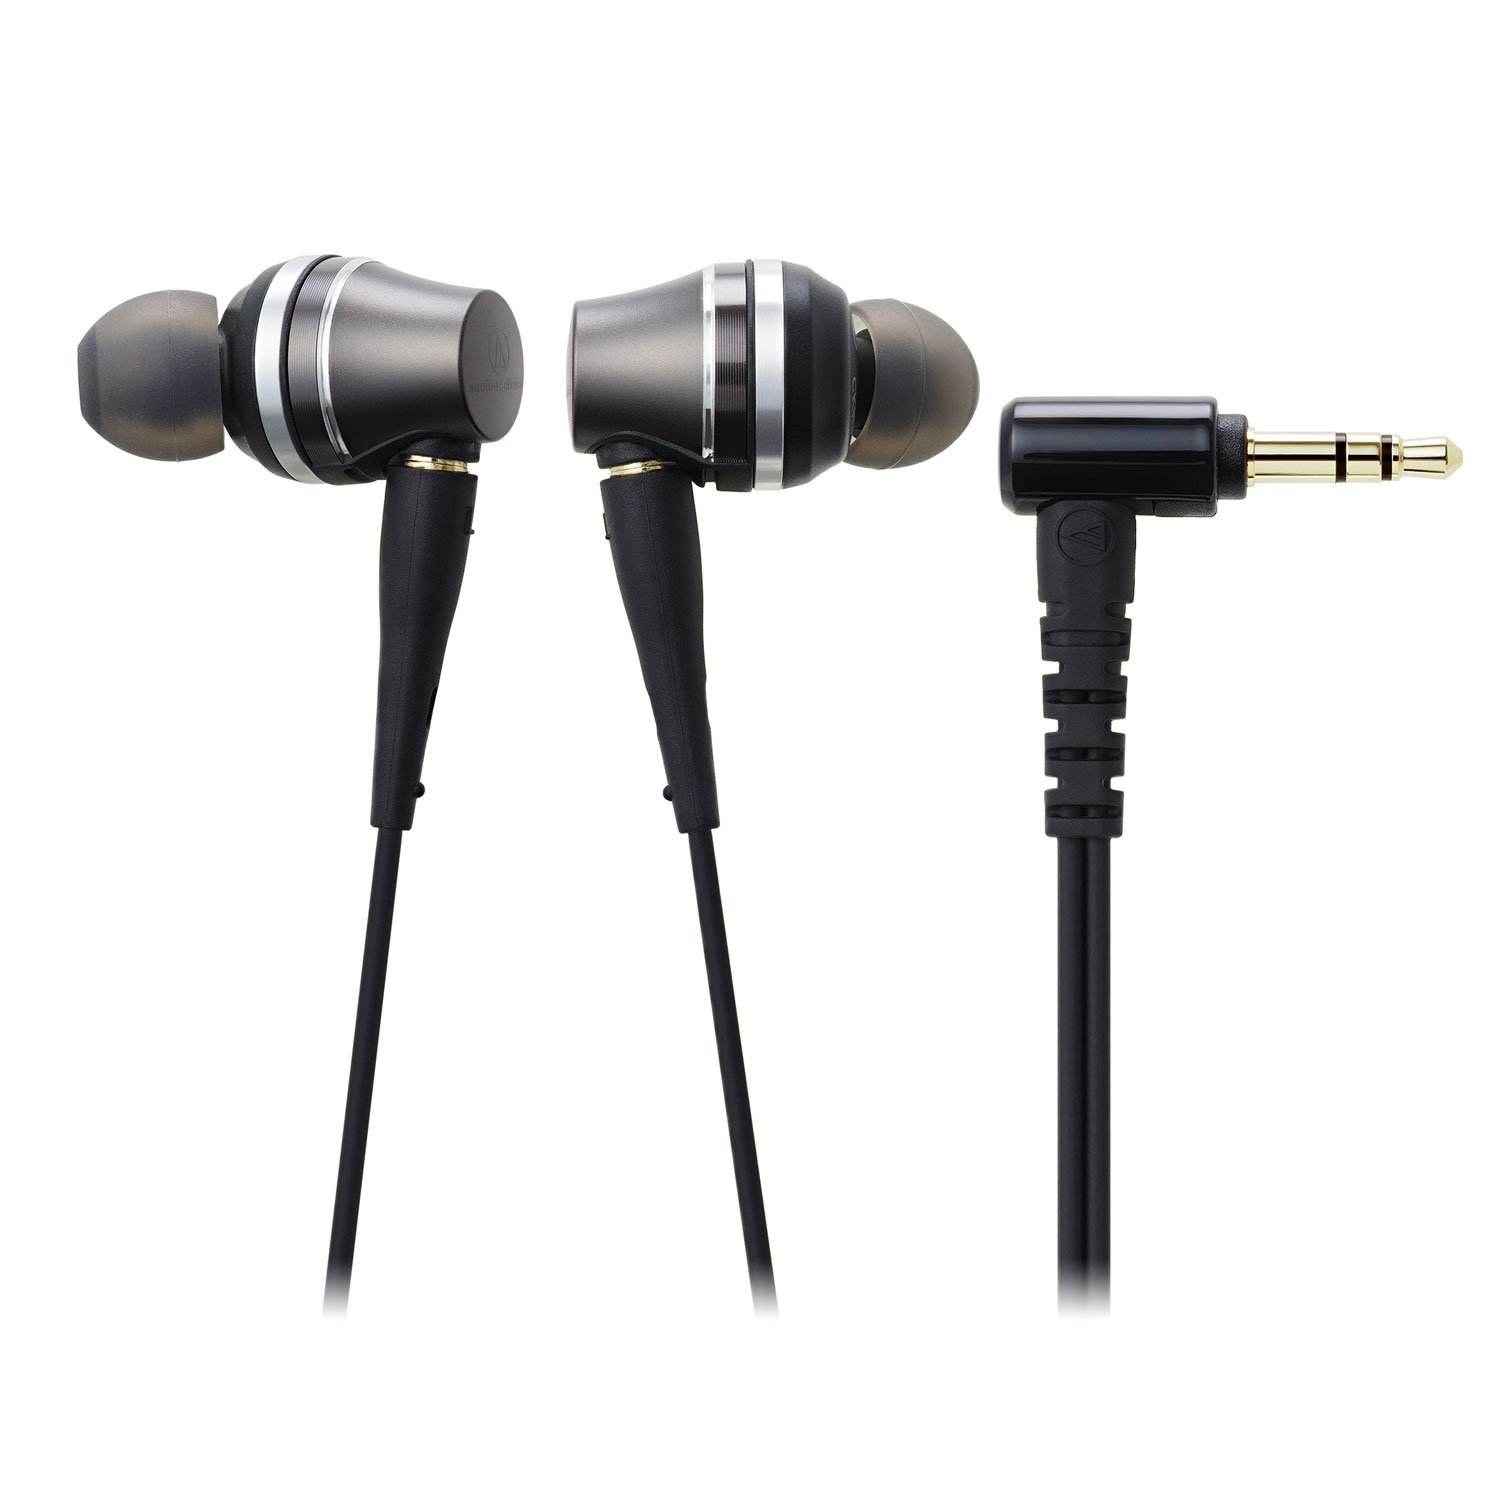 AT ATH-CKR90iS High Resoluation In-Ear Headphones